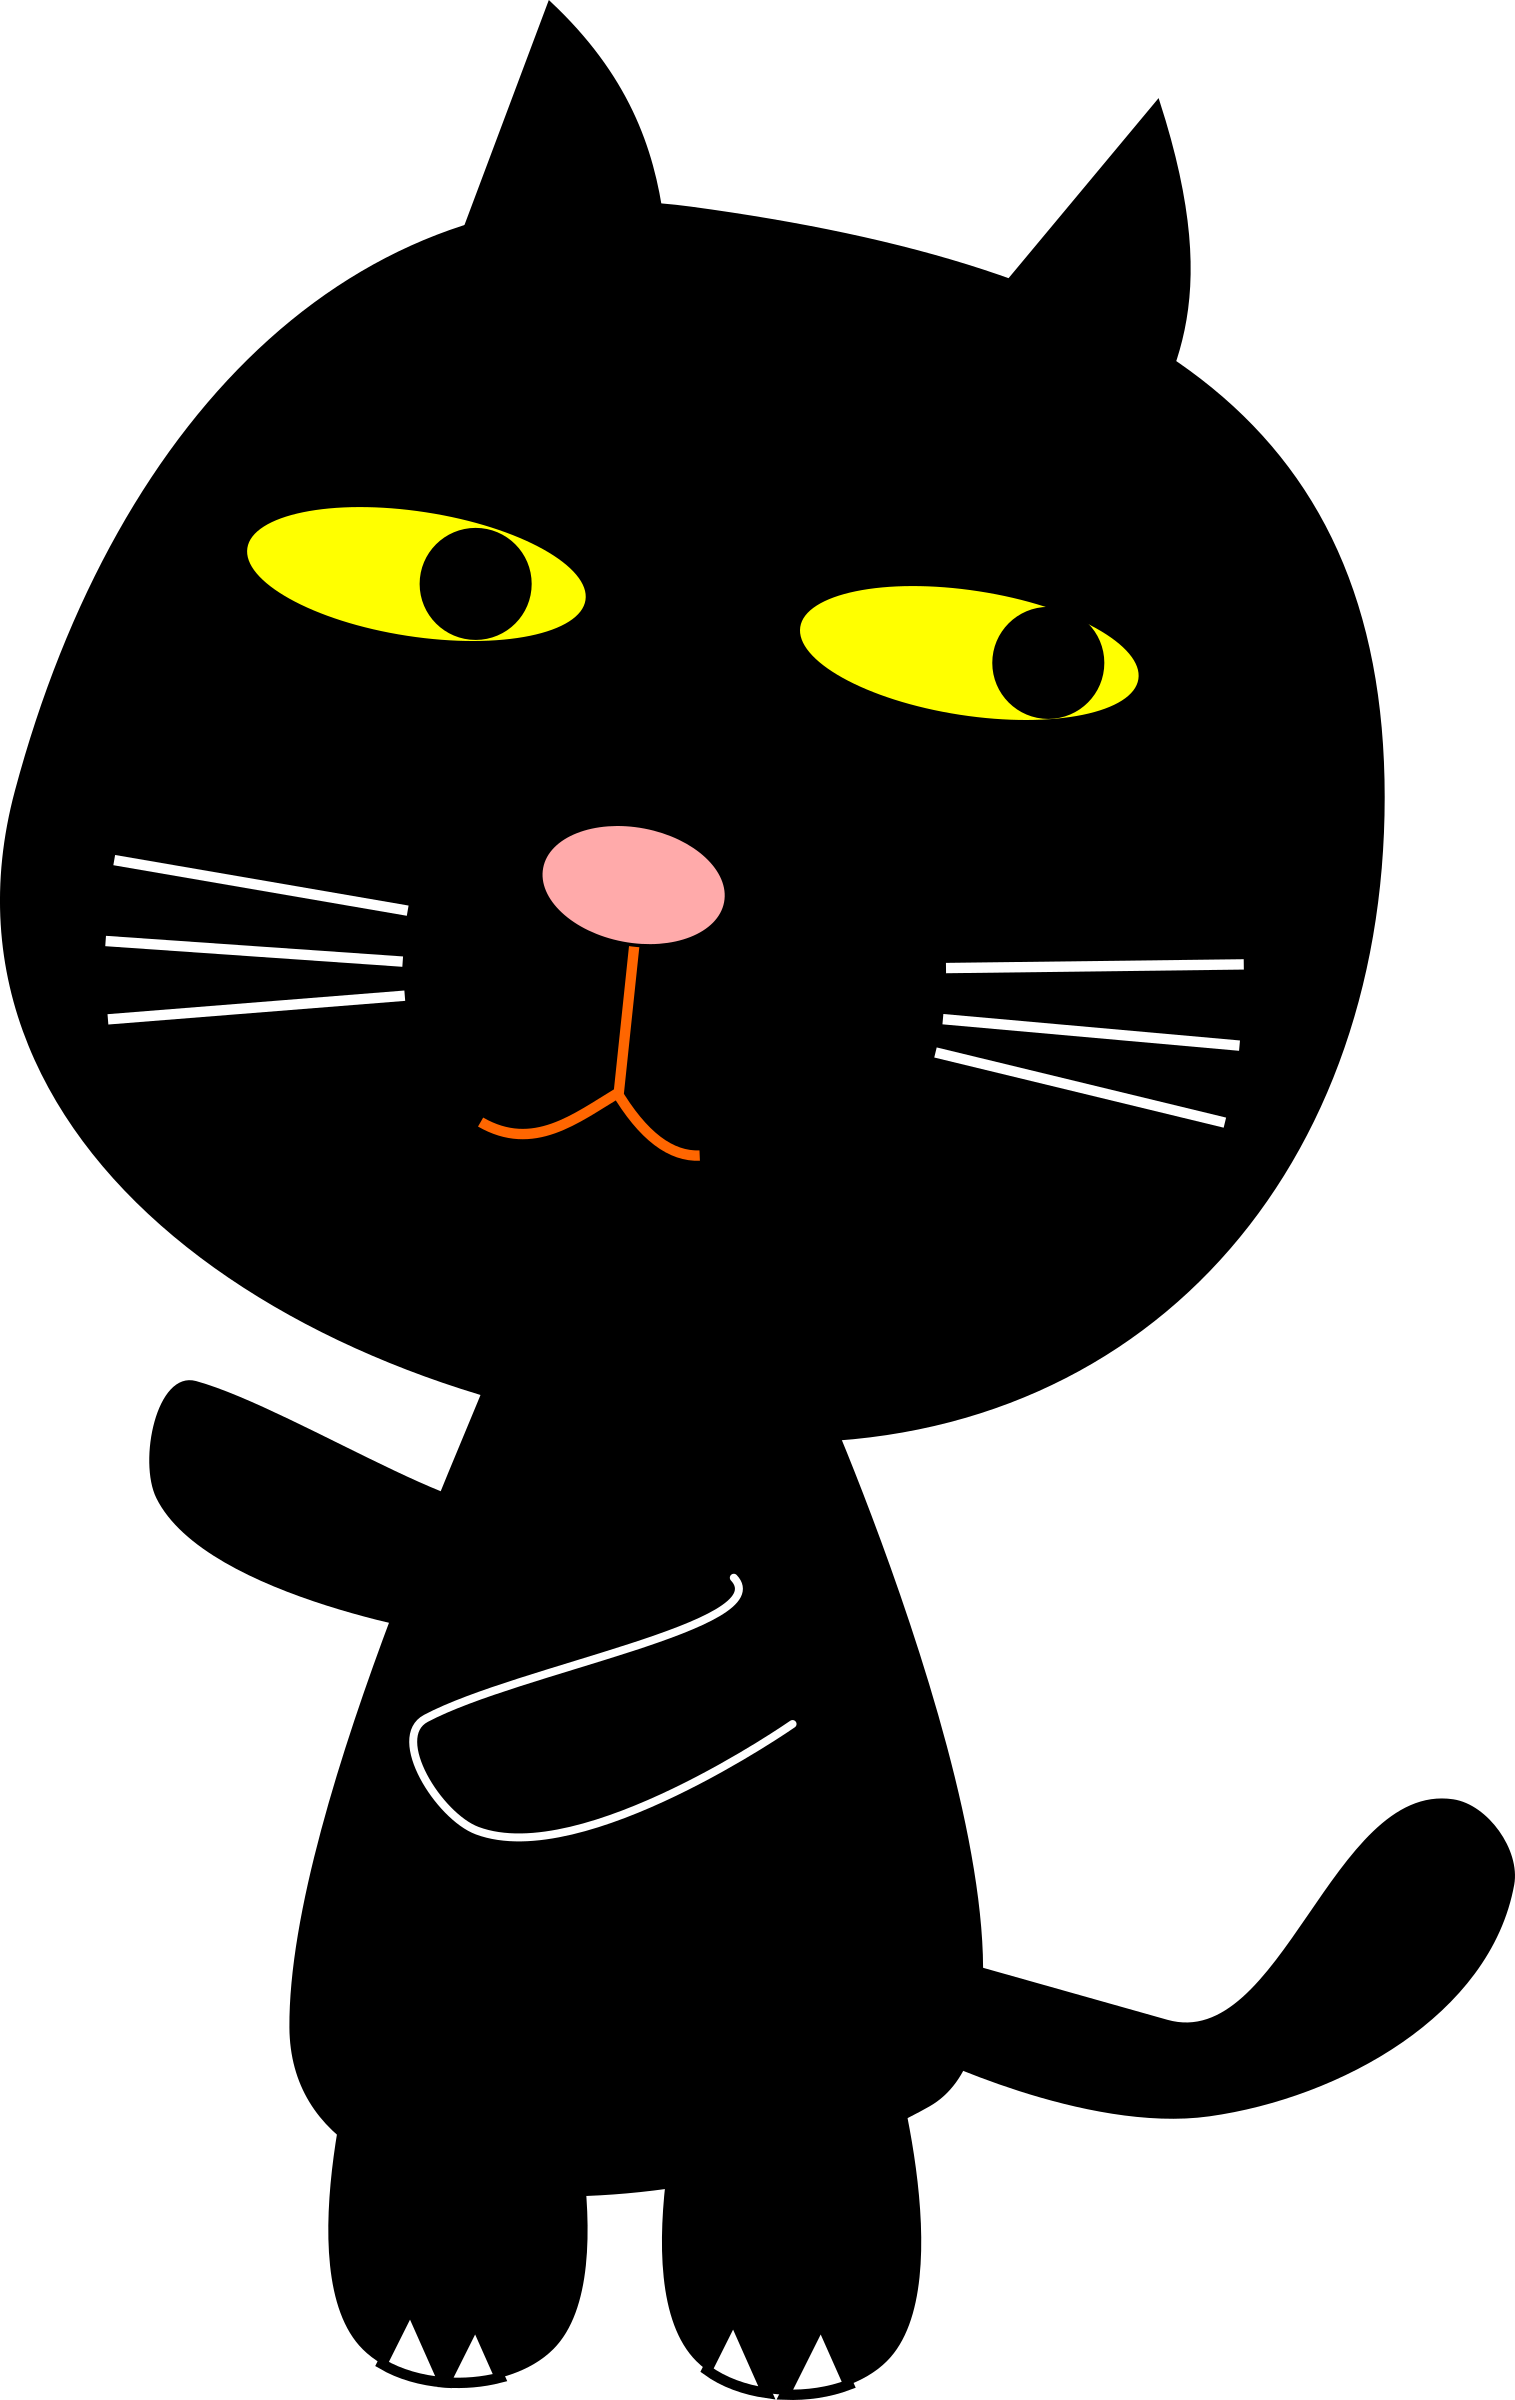 Clipart - Black Cat clipart black and white download